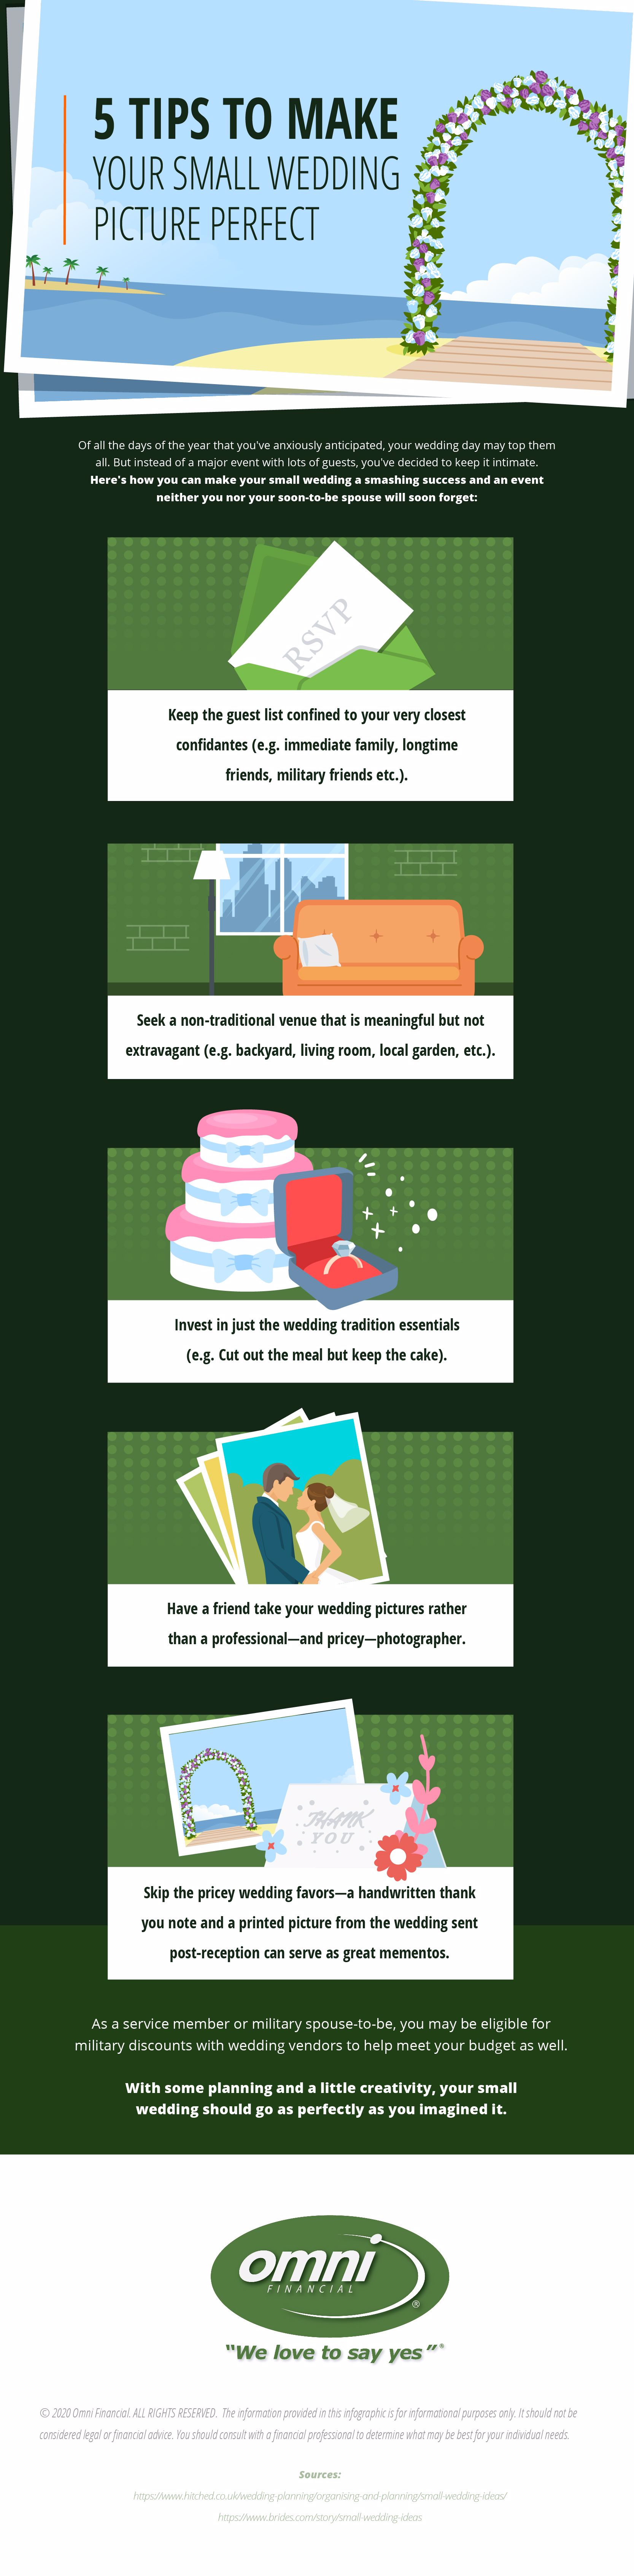 Infographic with tips on how to make a small wedding special